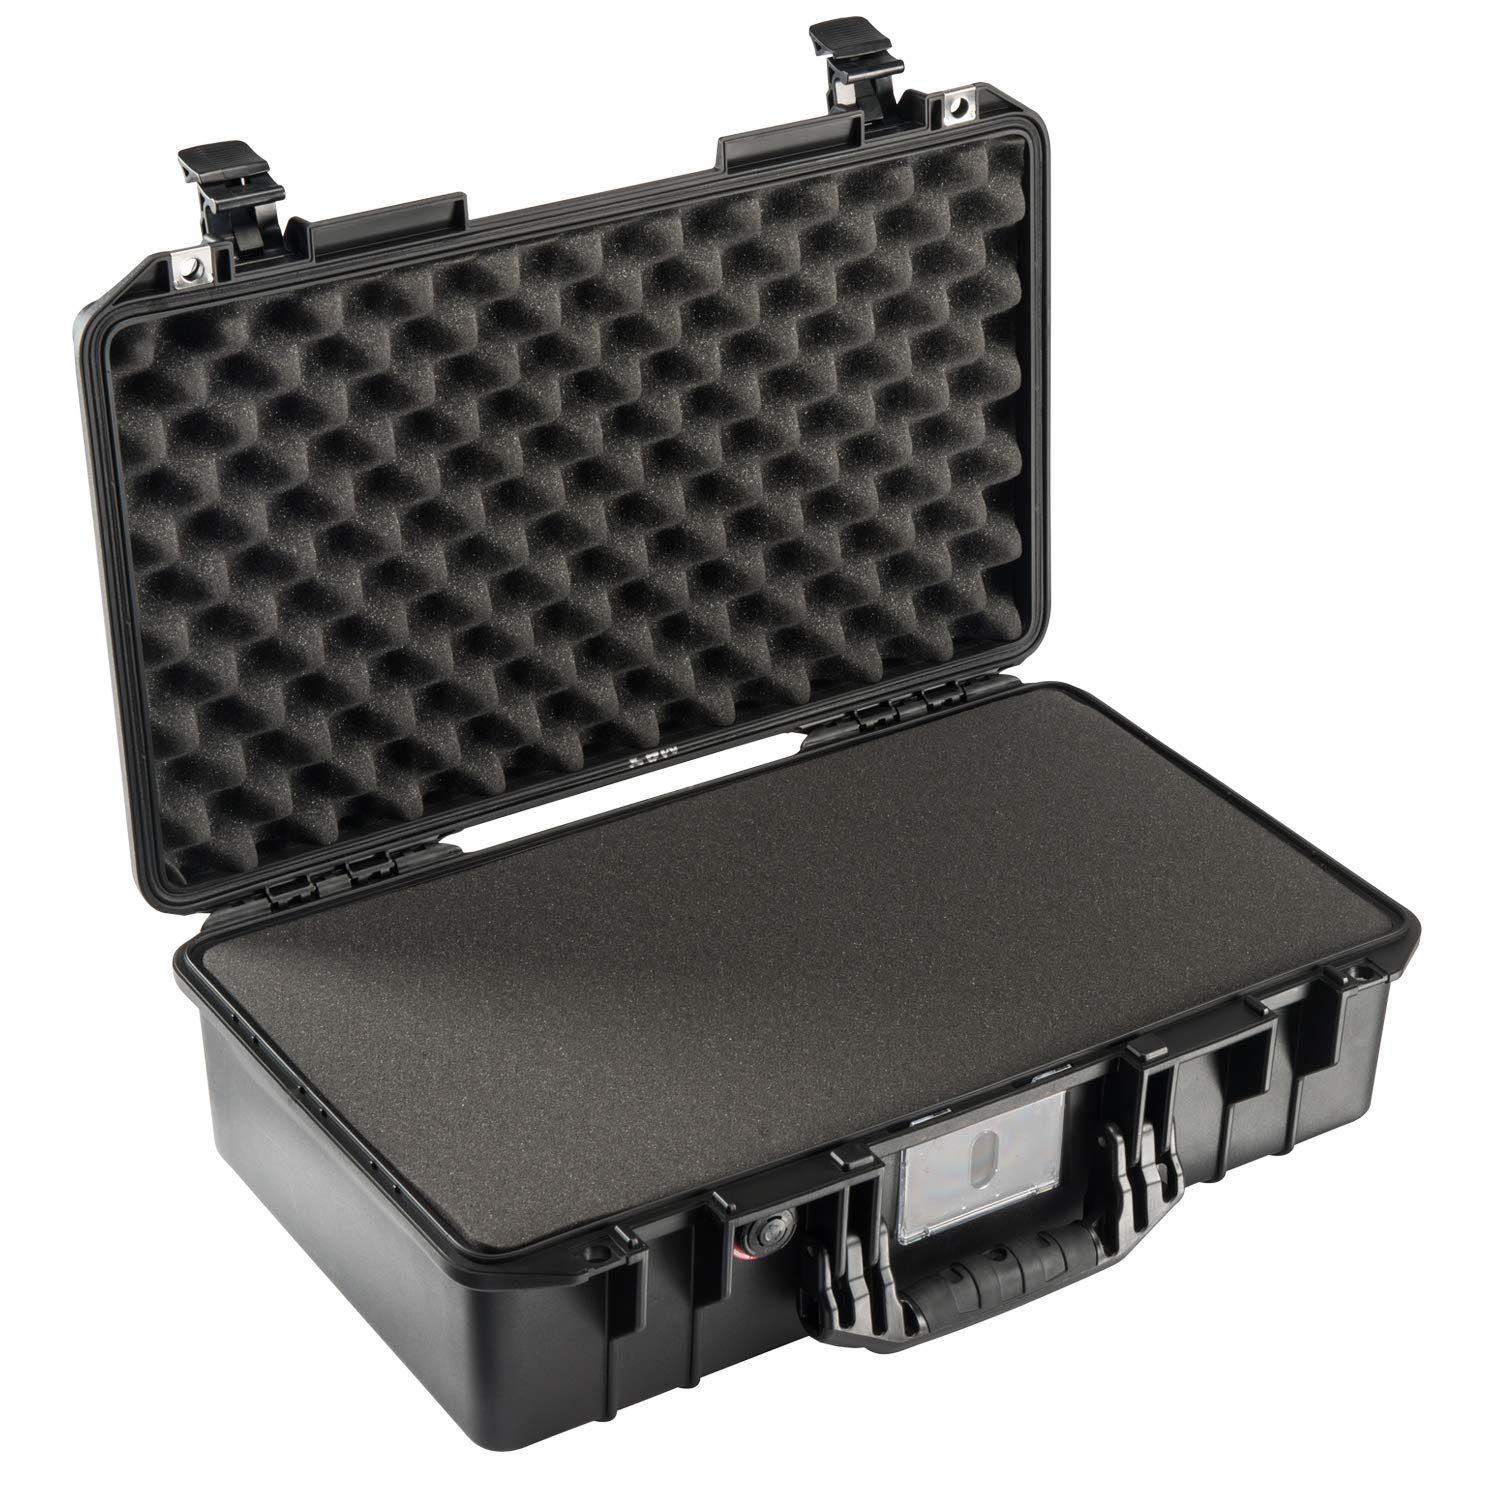 Pelican Air 1525 Case With Foam (Black)